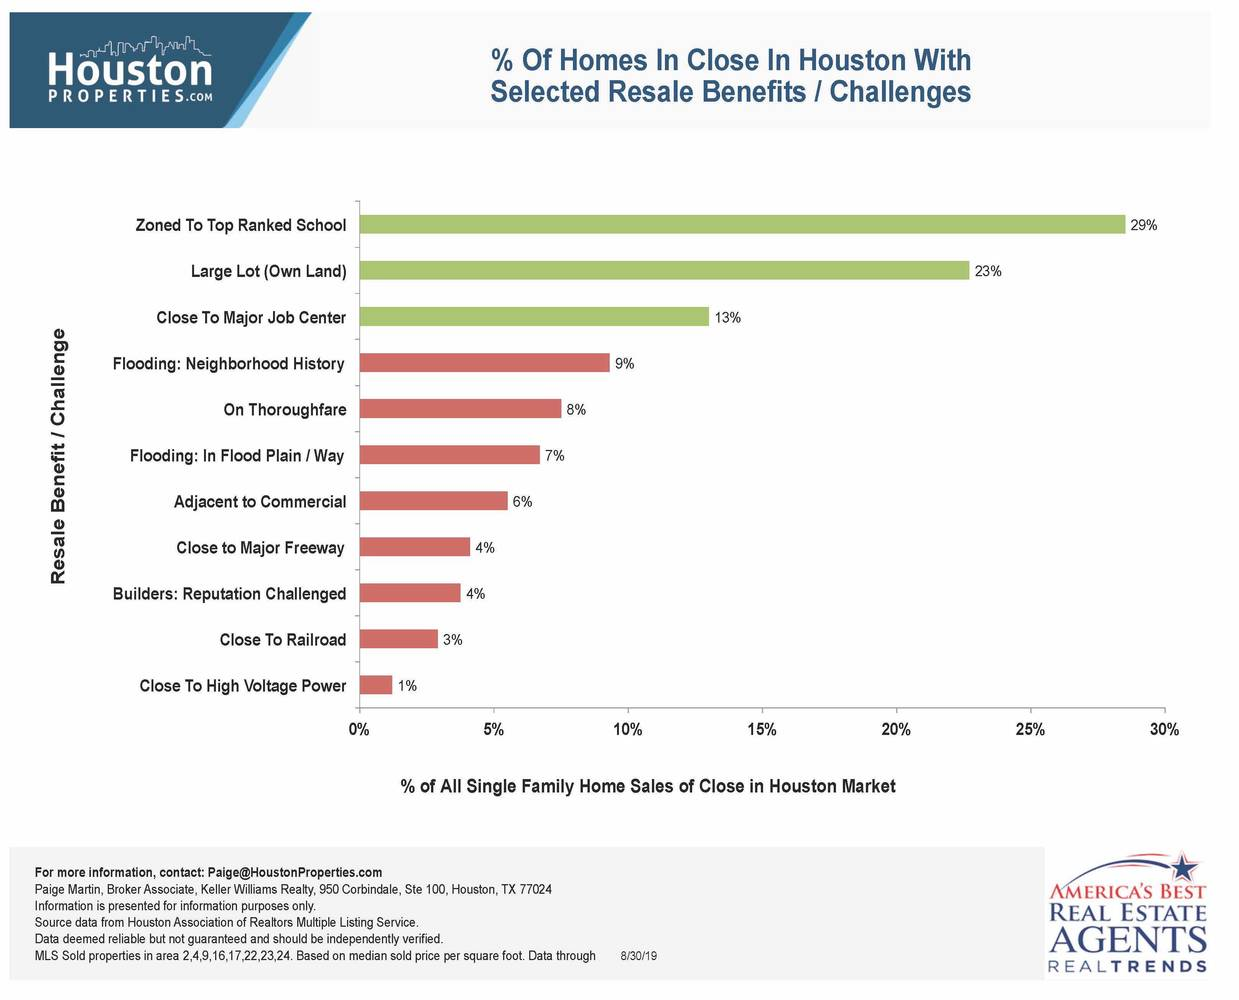 Houston Home Sales Comparing Impact Of Resale Benefits And Challenges